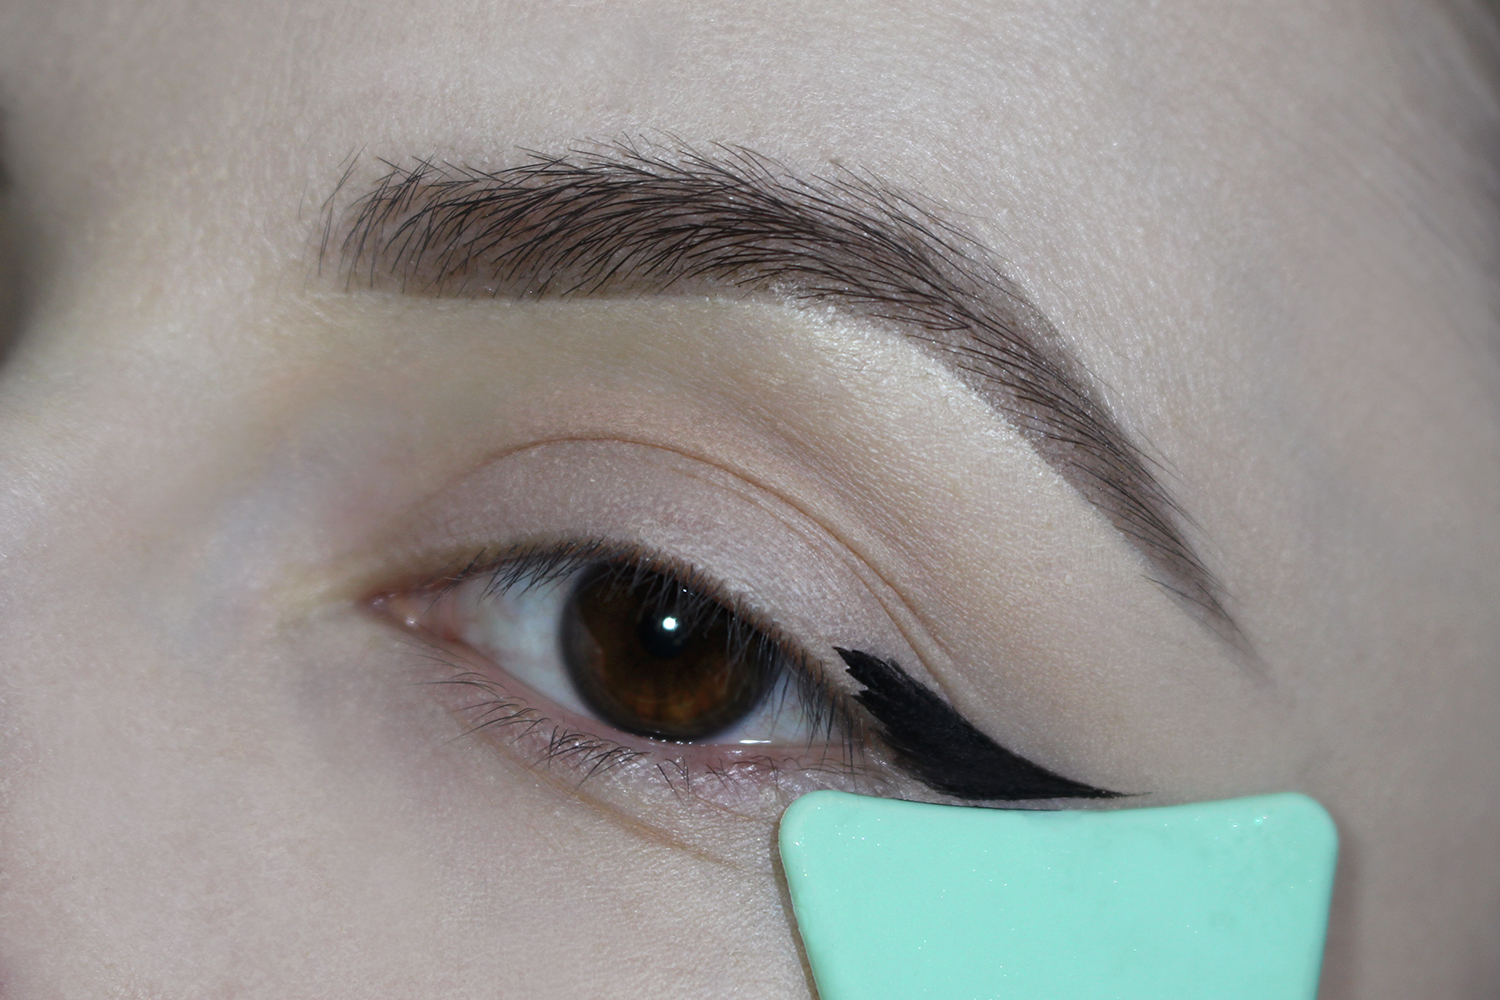 a close-up picture of an eye with a cat eyeliner makeup look